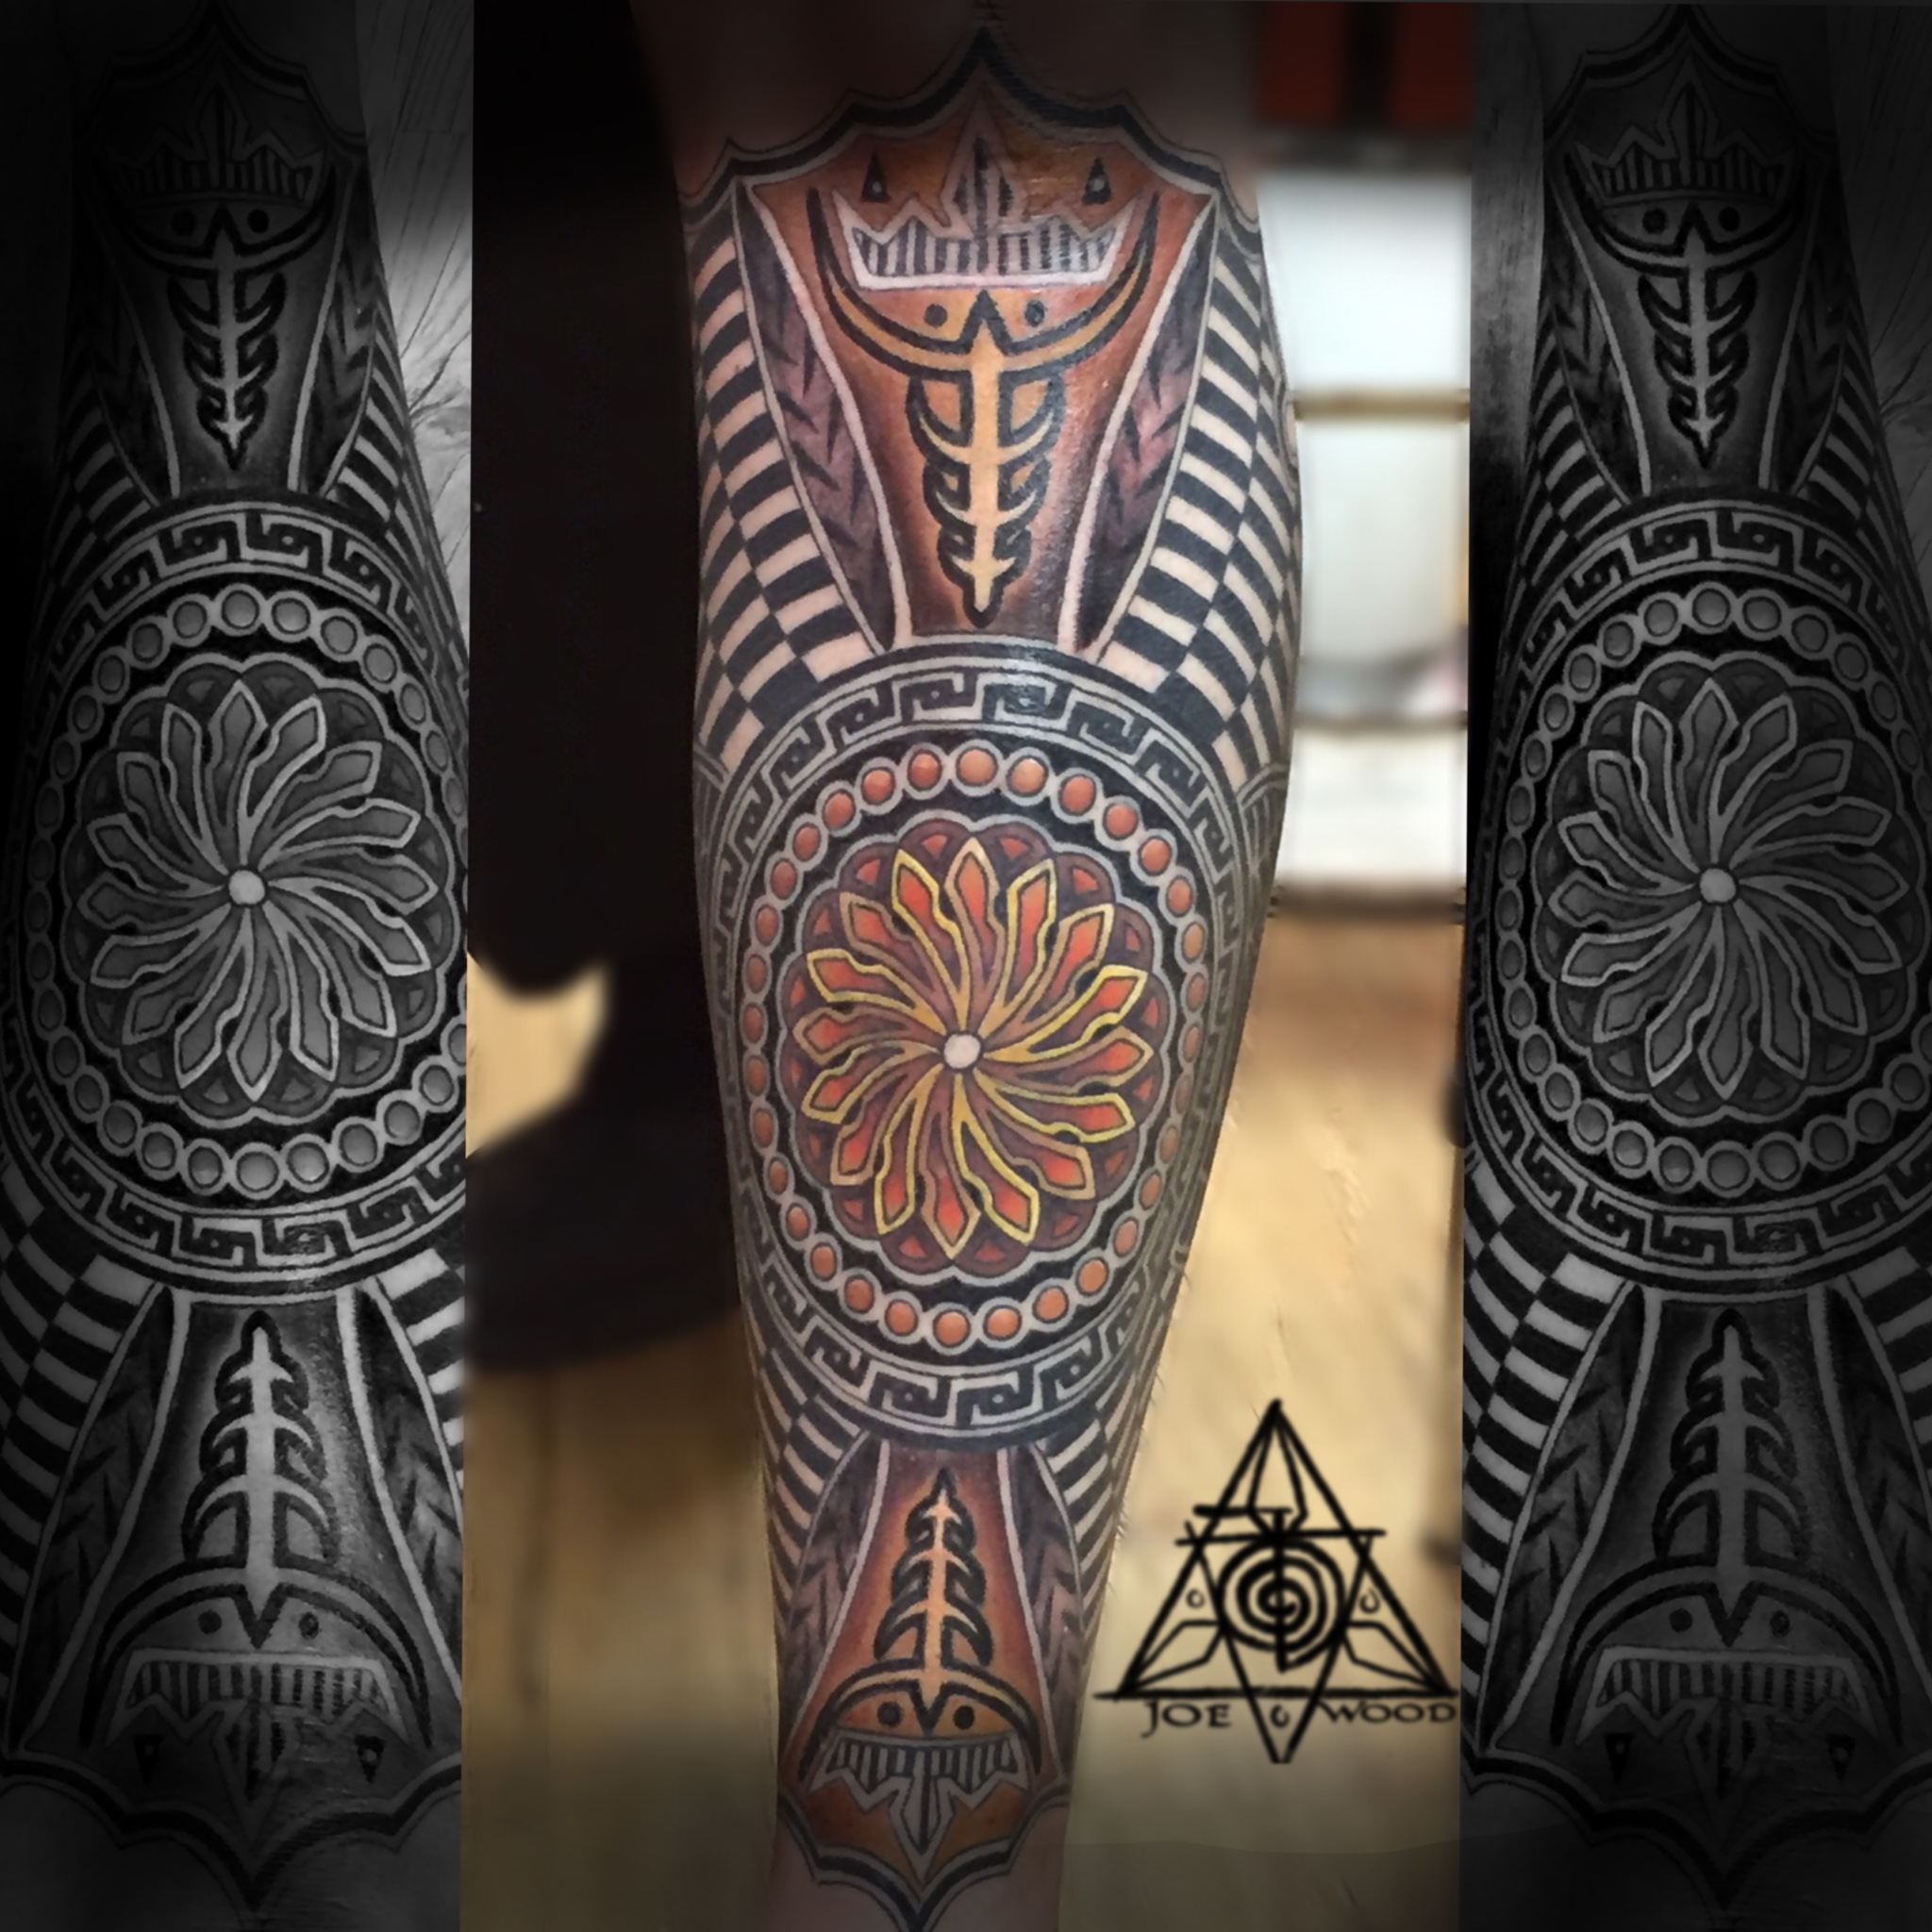 Polynesian geometry fusion by Joe Wood